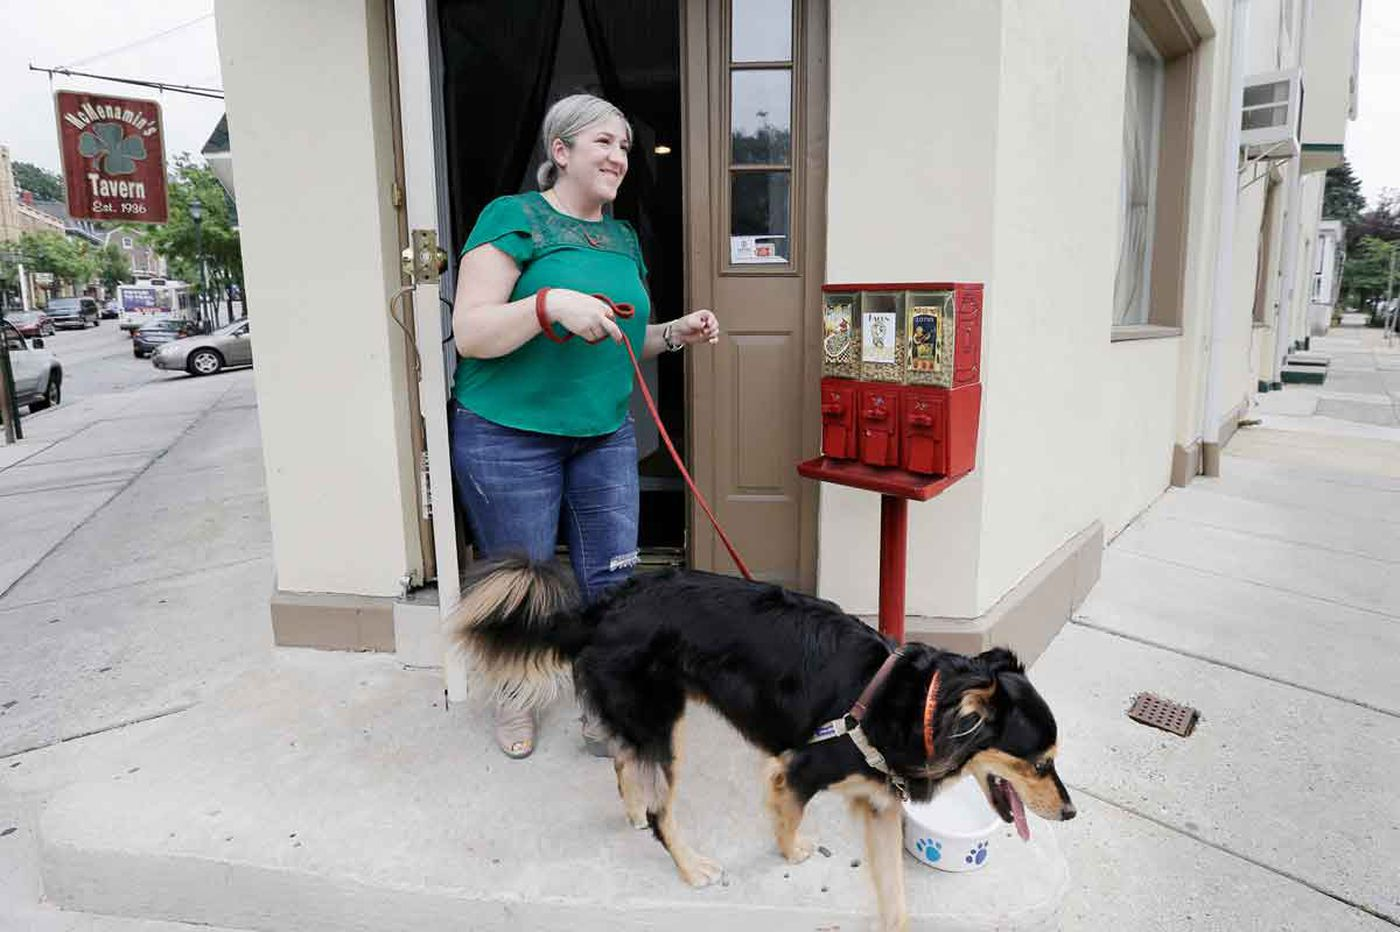 In Mount Airy, this commercial strip has gone to the dogs, but in a good way